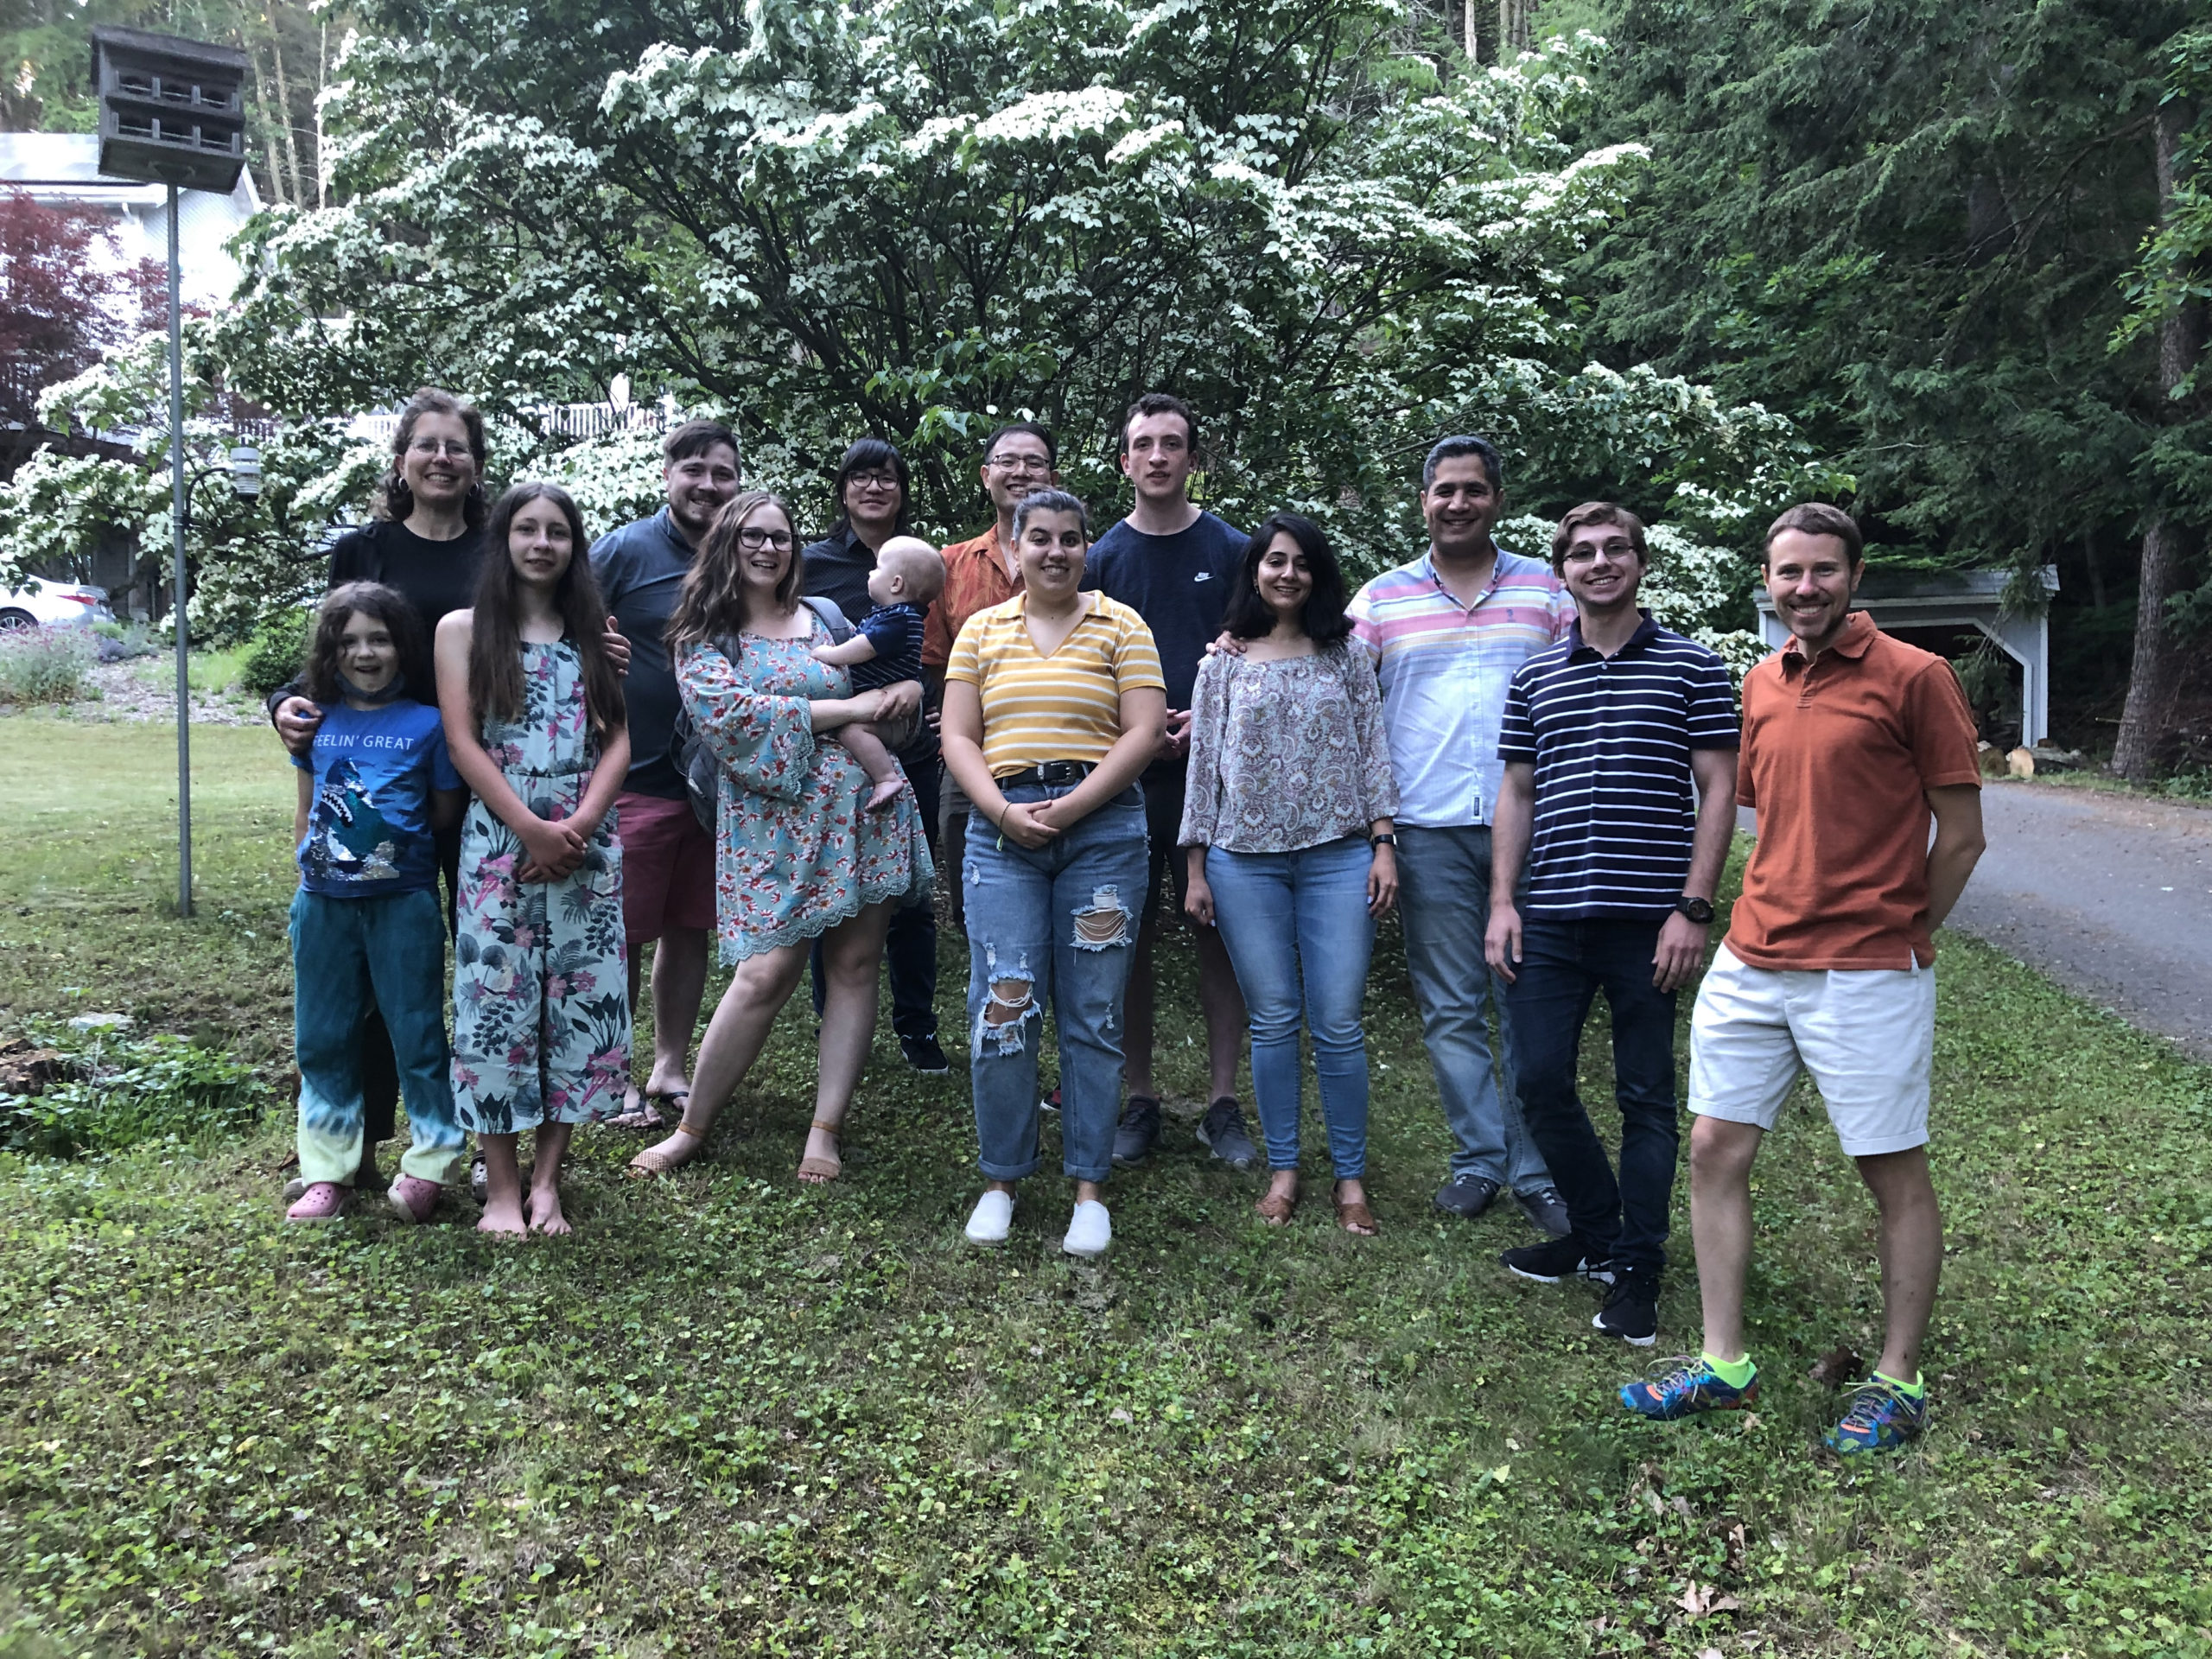 Lab group in front of flowering dogwood